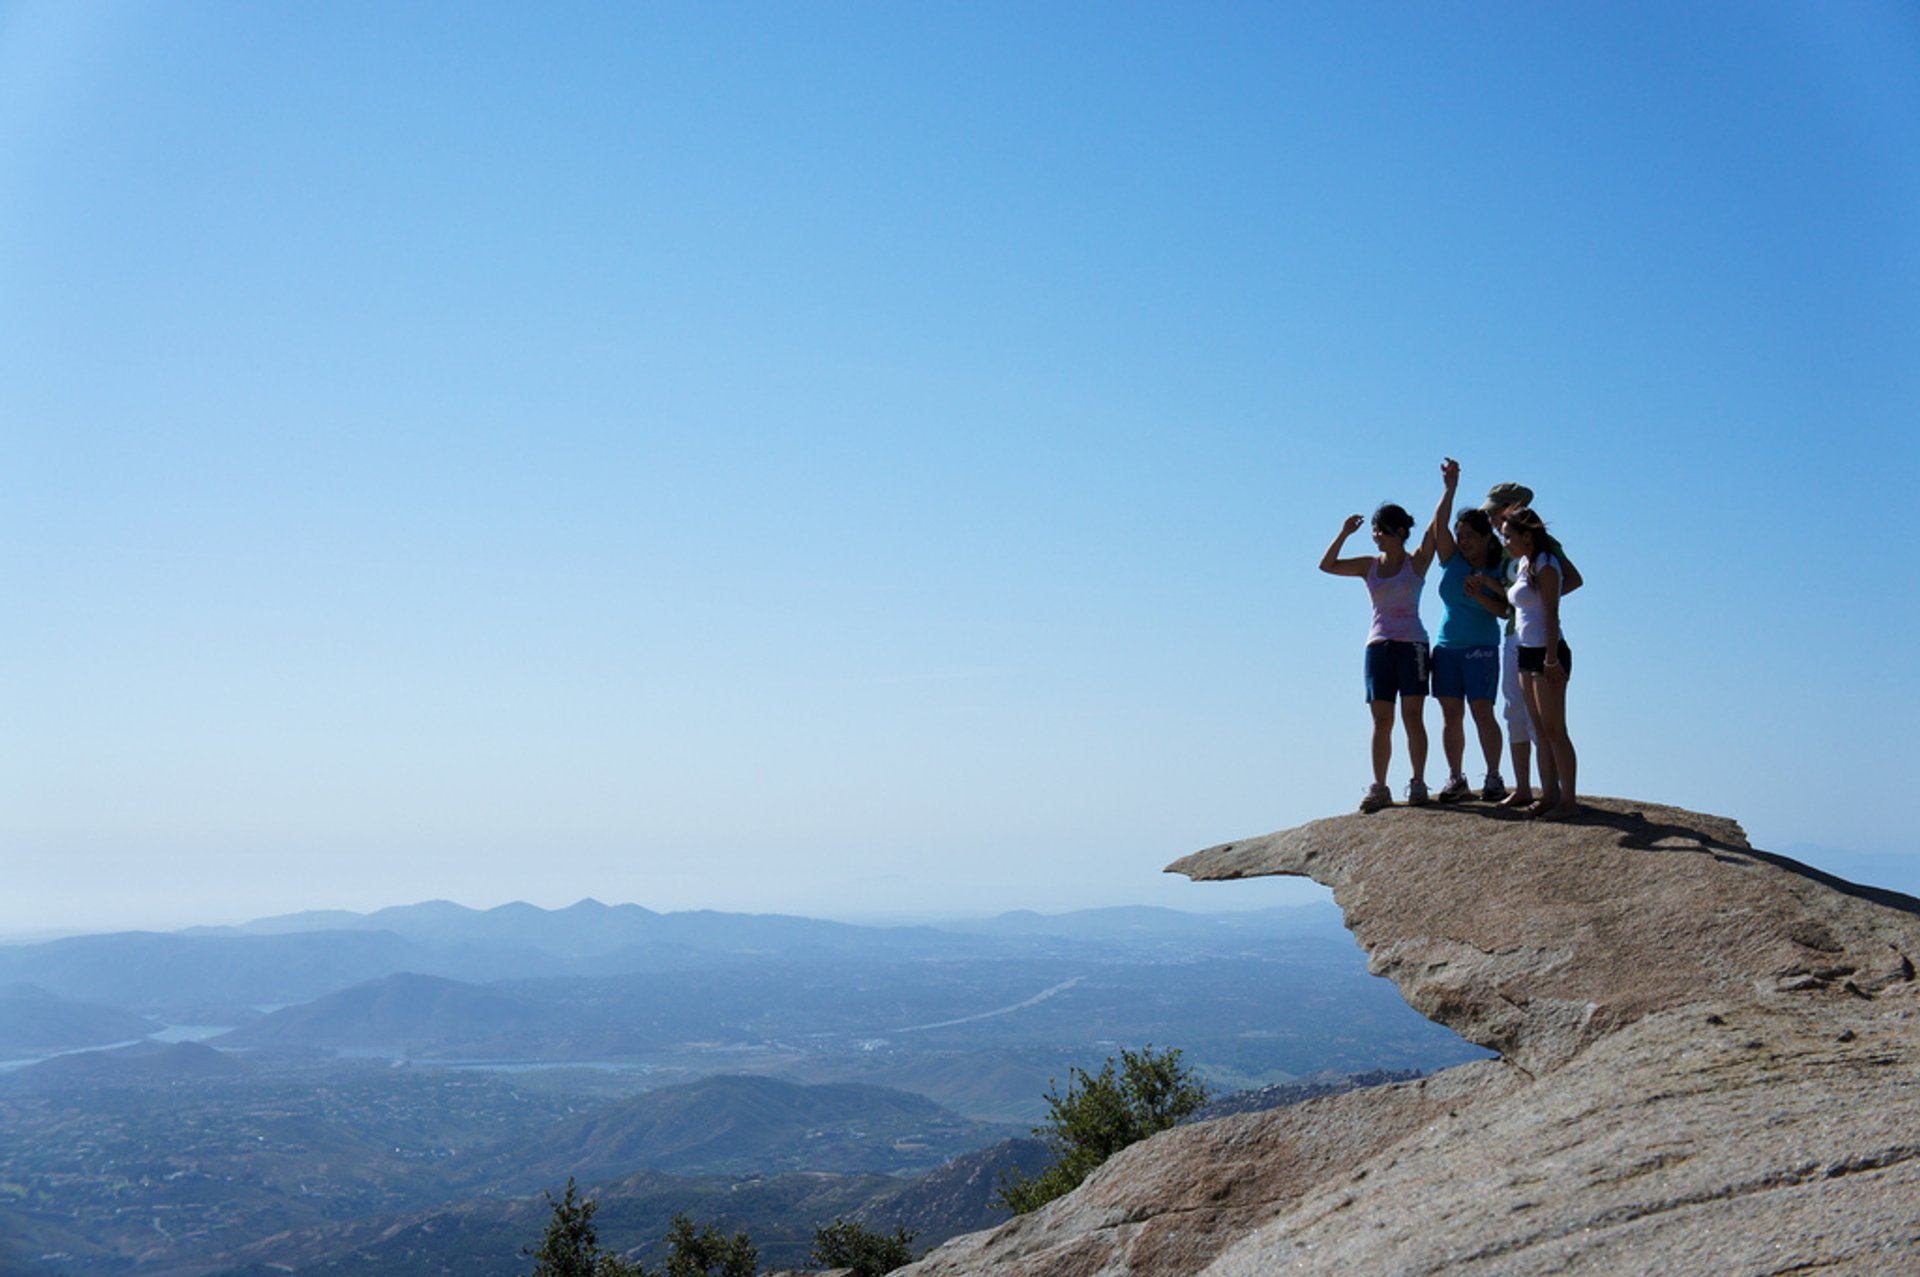 Potato Chip Rock Hike (Mt. Woodson) in San Diego - Best Season 2020